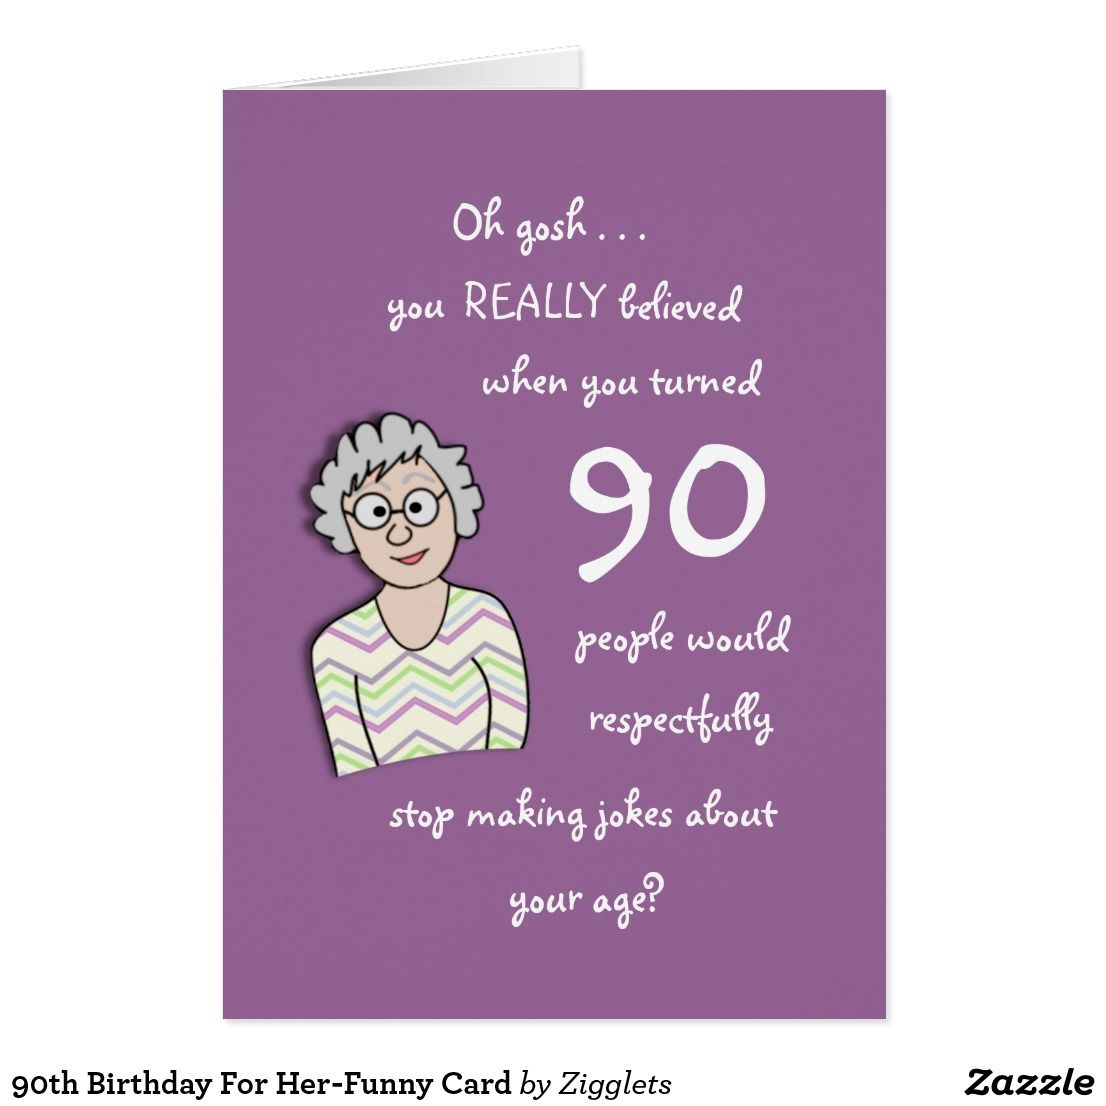 90th Birthday For Her Funny Card Images Cards